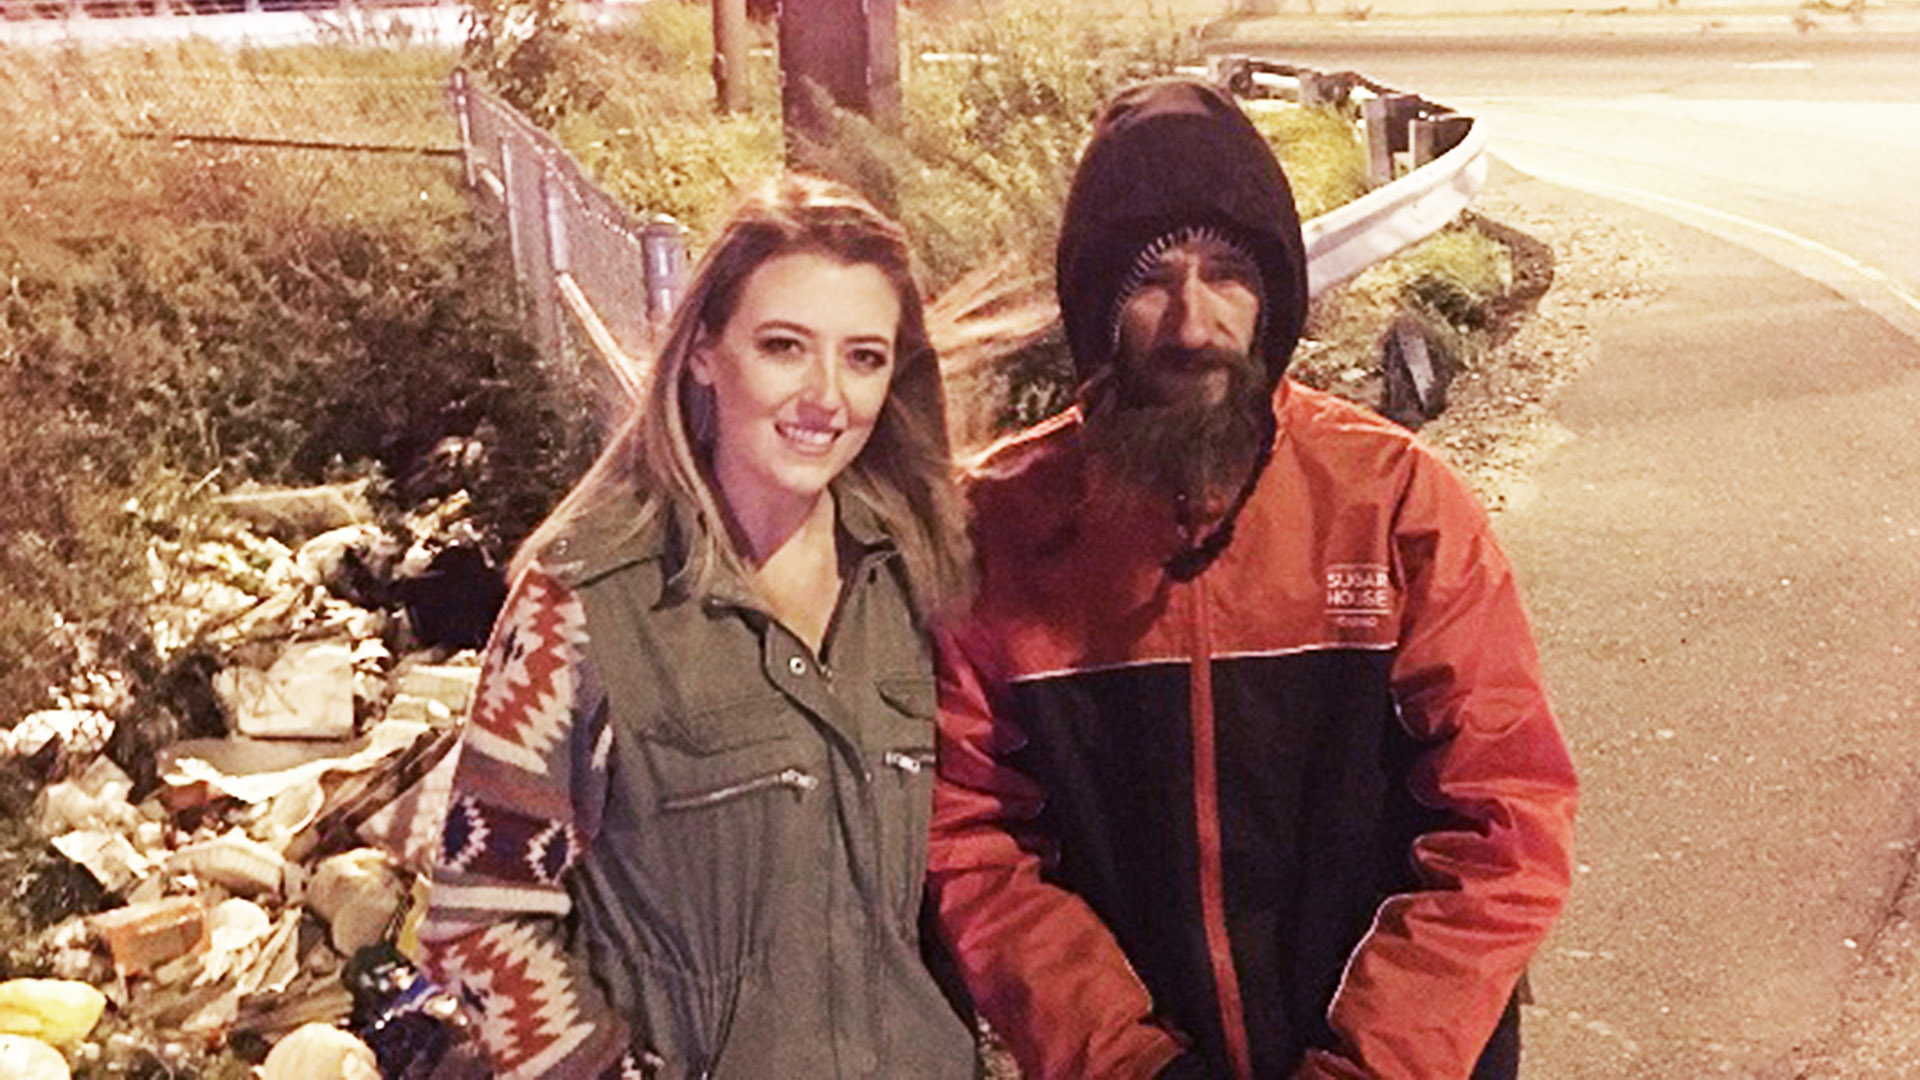 Homeless man buys stranded woman gas with last $20 — here's how she repaid him